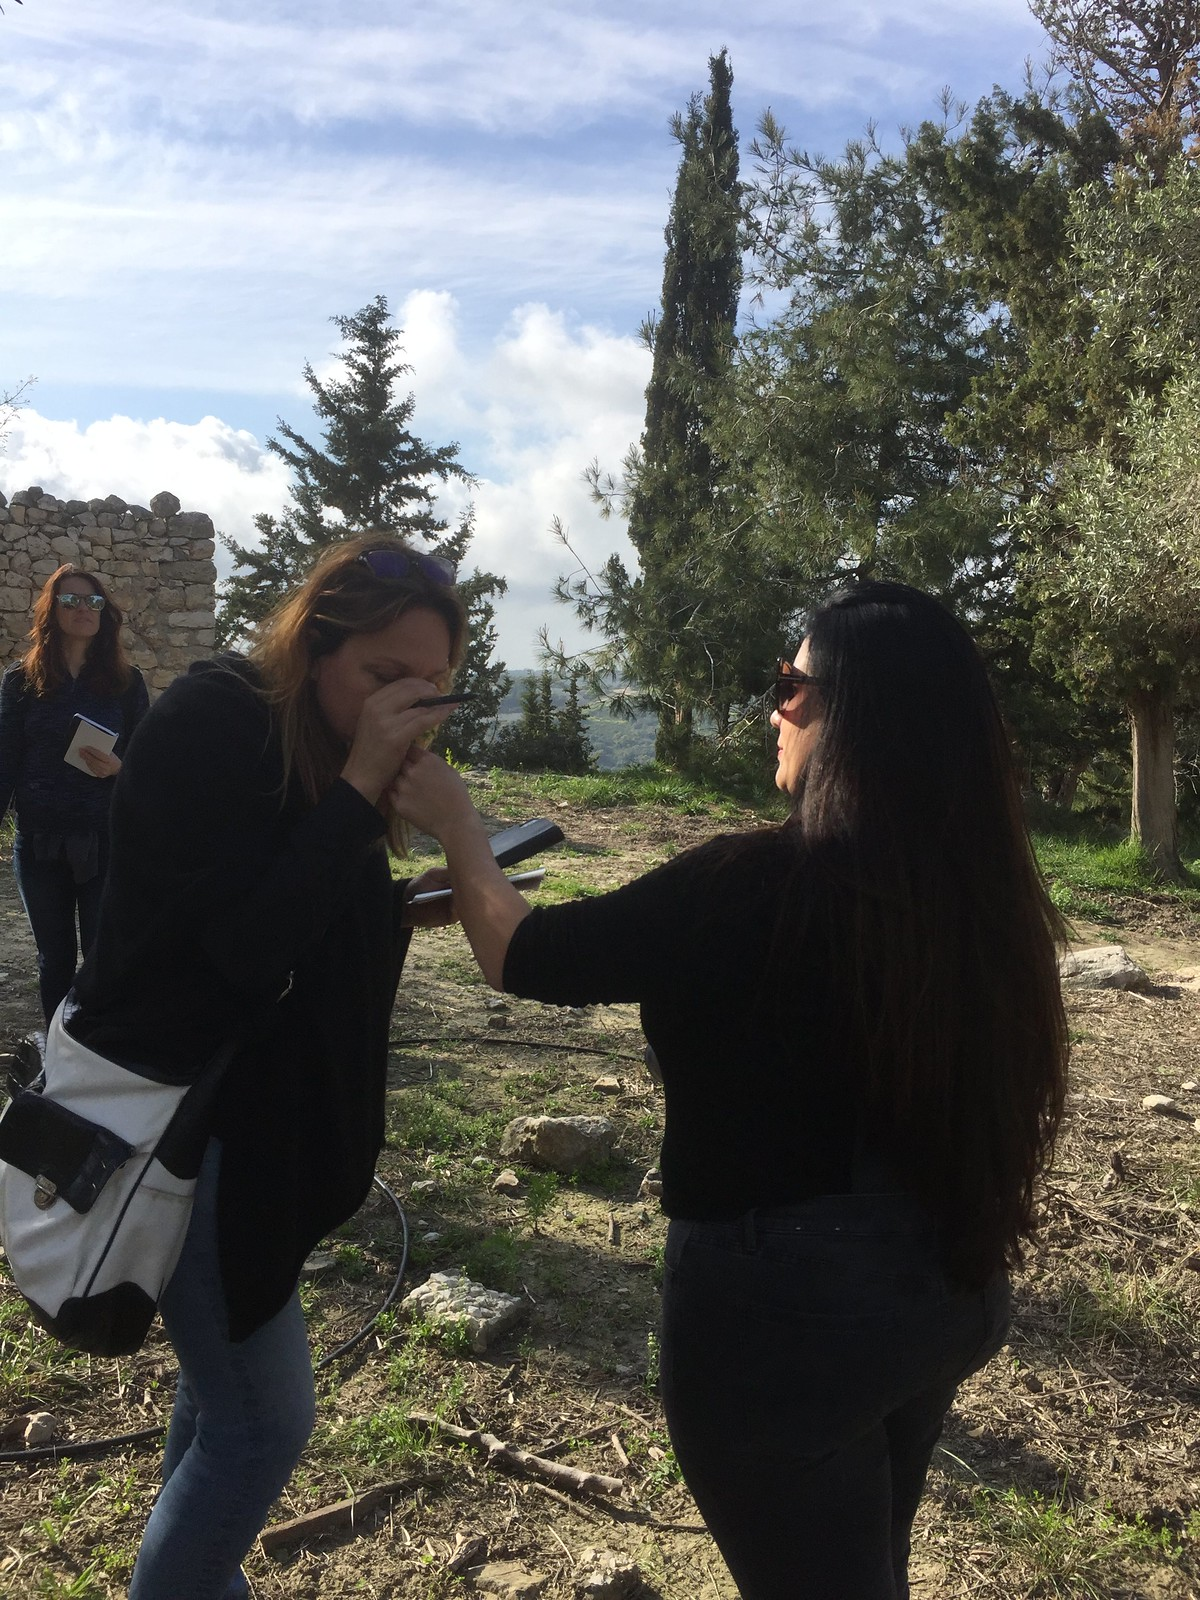 My Students Rock! Fougere Week-Long Course March 24-28, 2019 Perfume Trail in Park Adamit